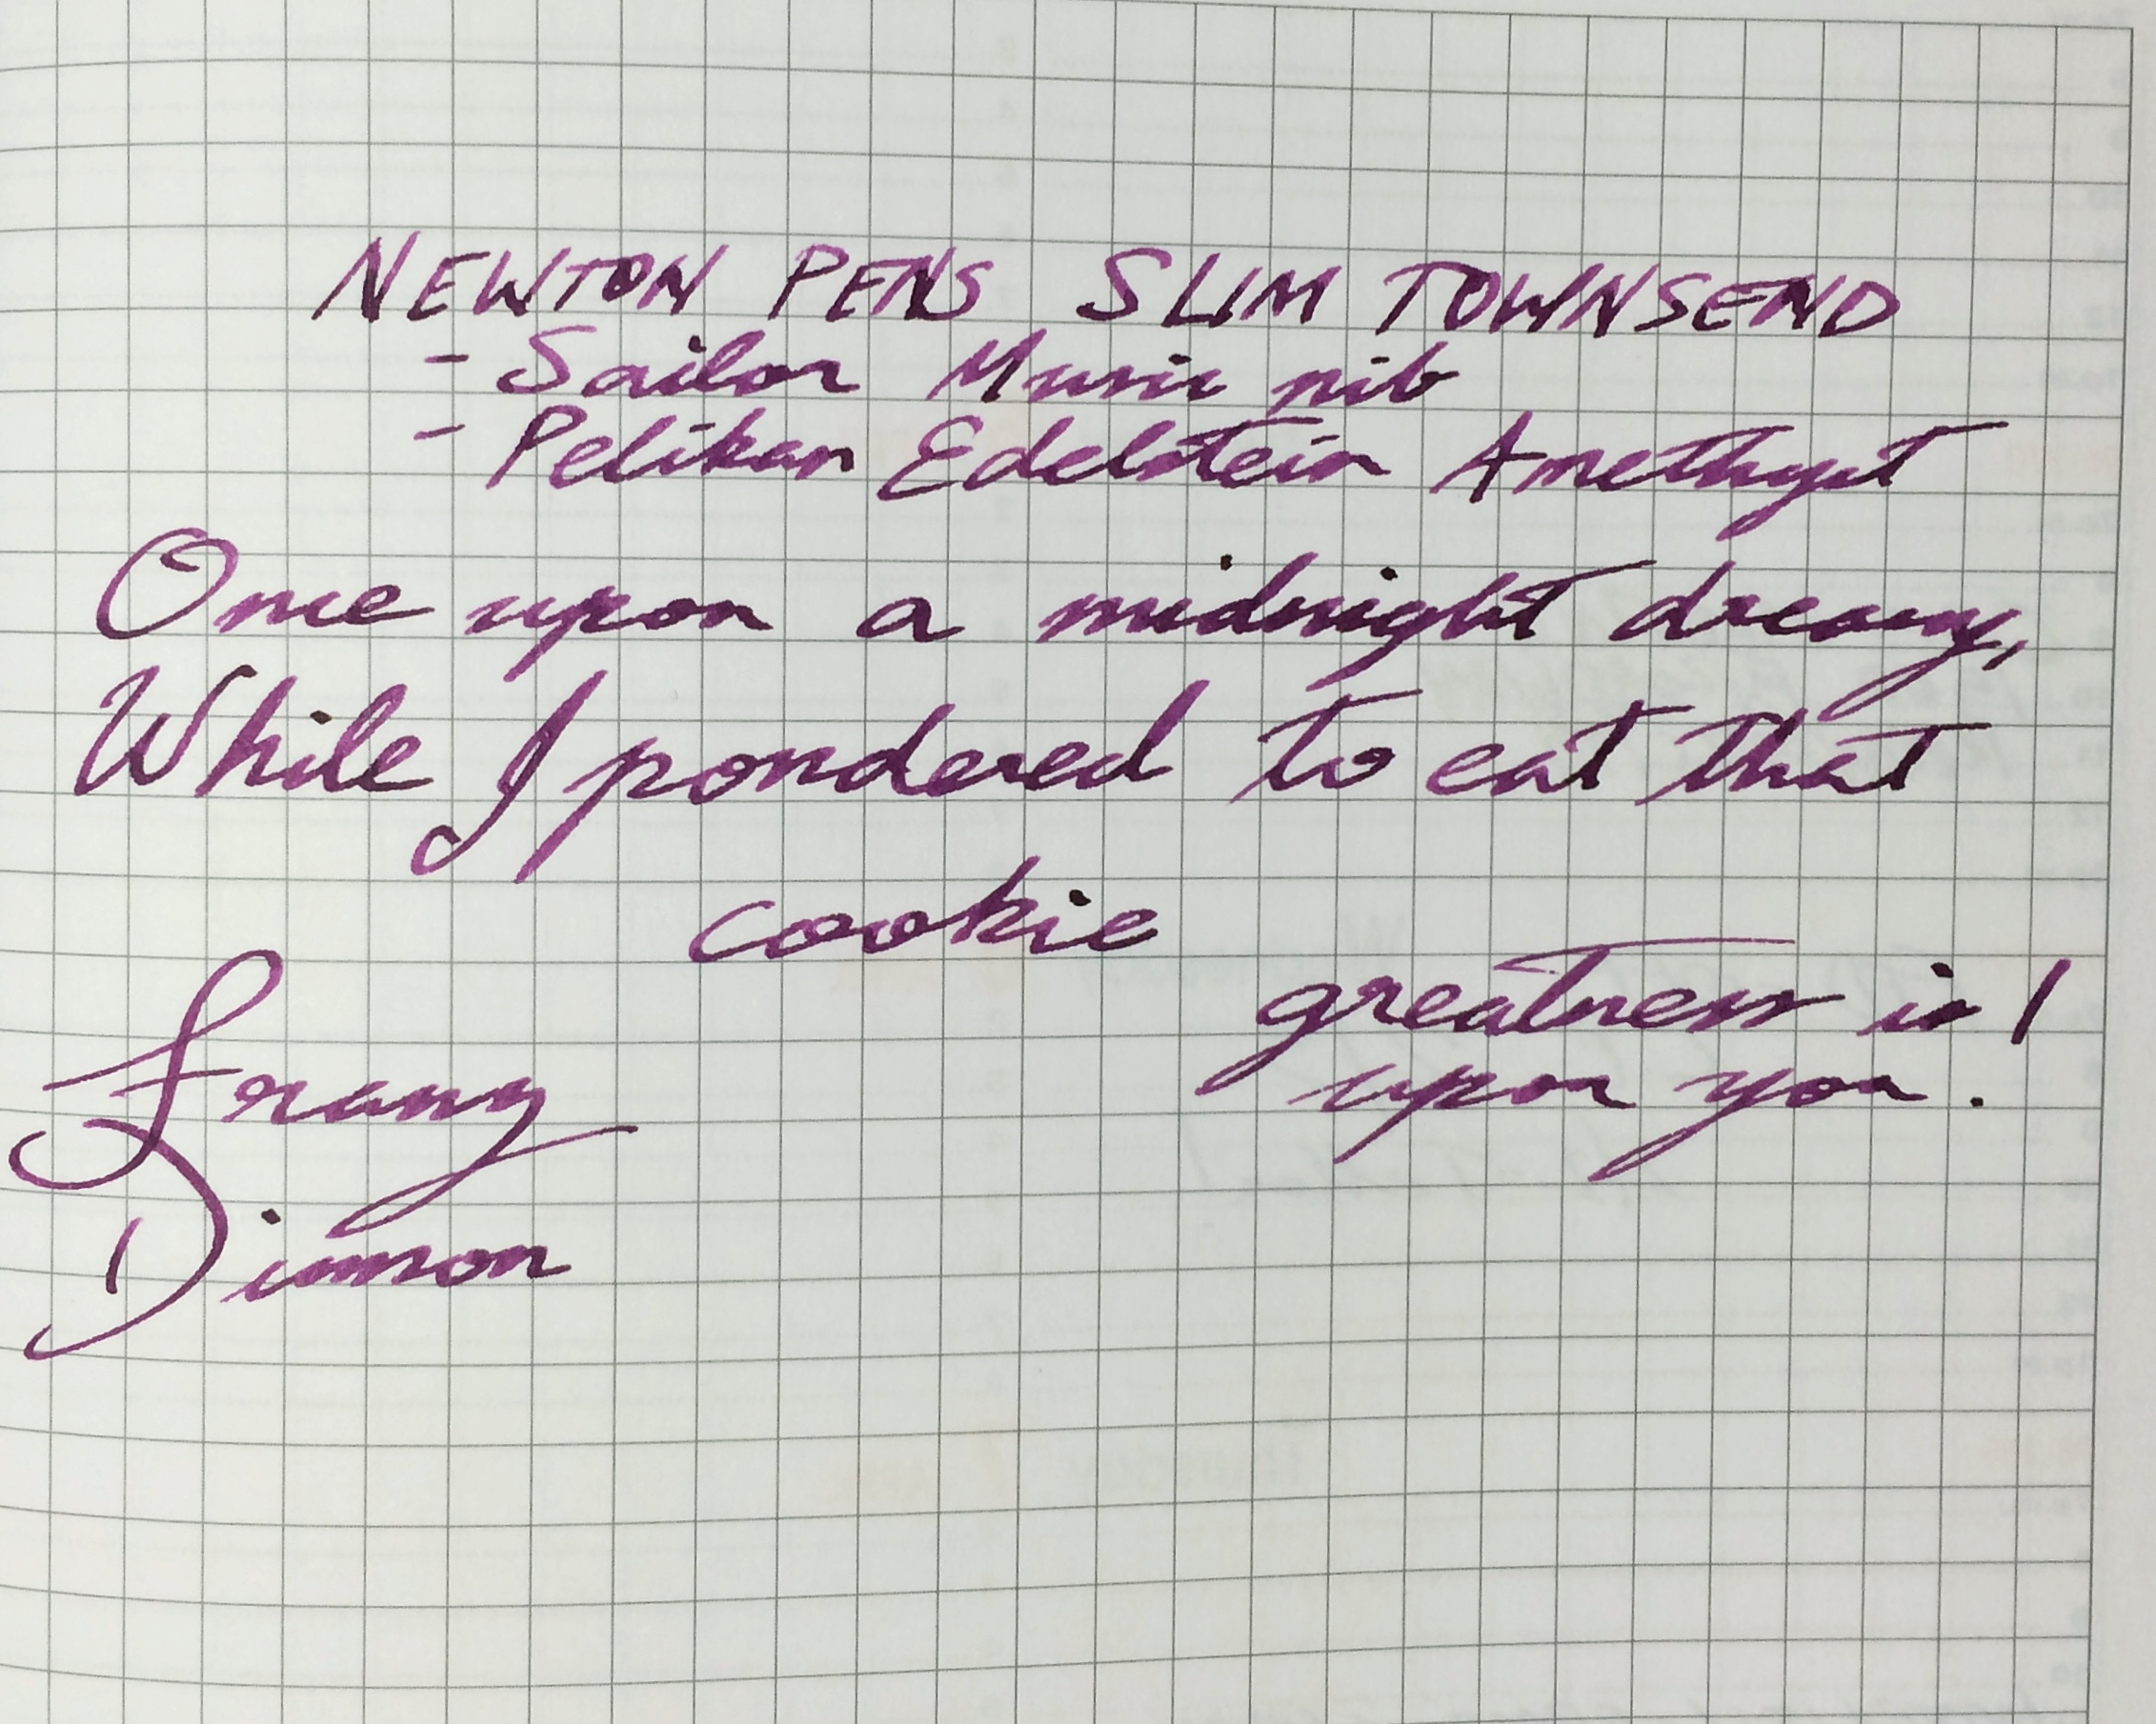 Franz's writing sample on a Rhodia Weekly Planner. Pelikan Edelstein Amethyst ink